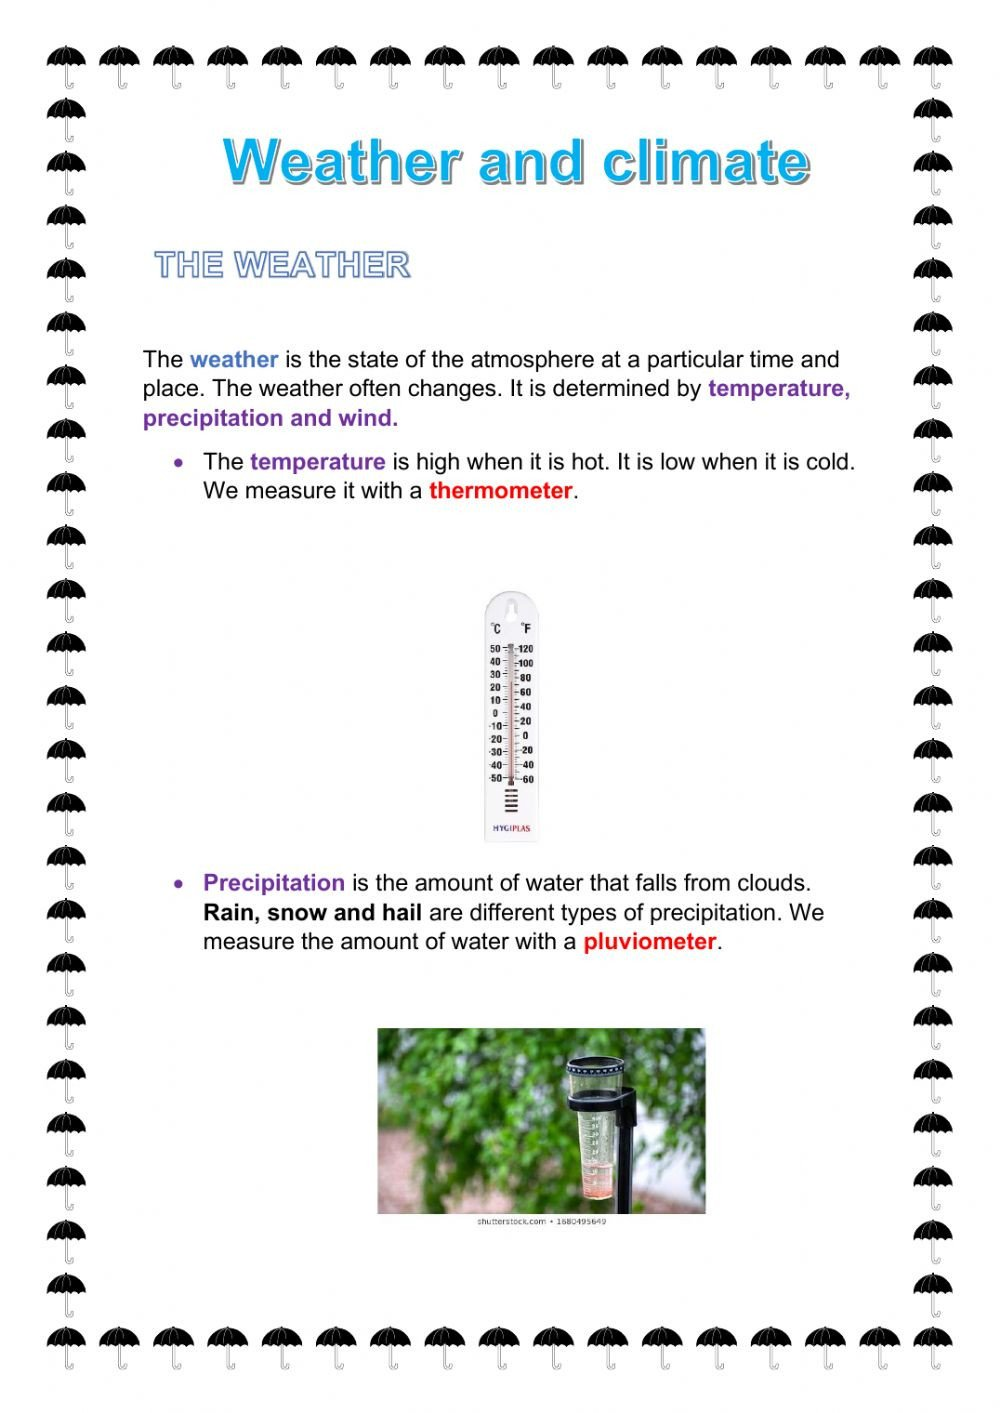 Weather and climate mn nq